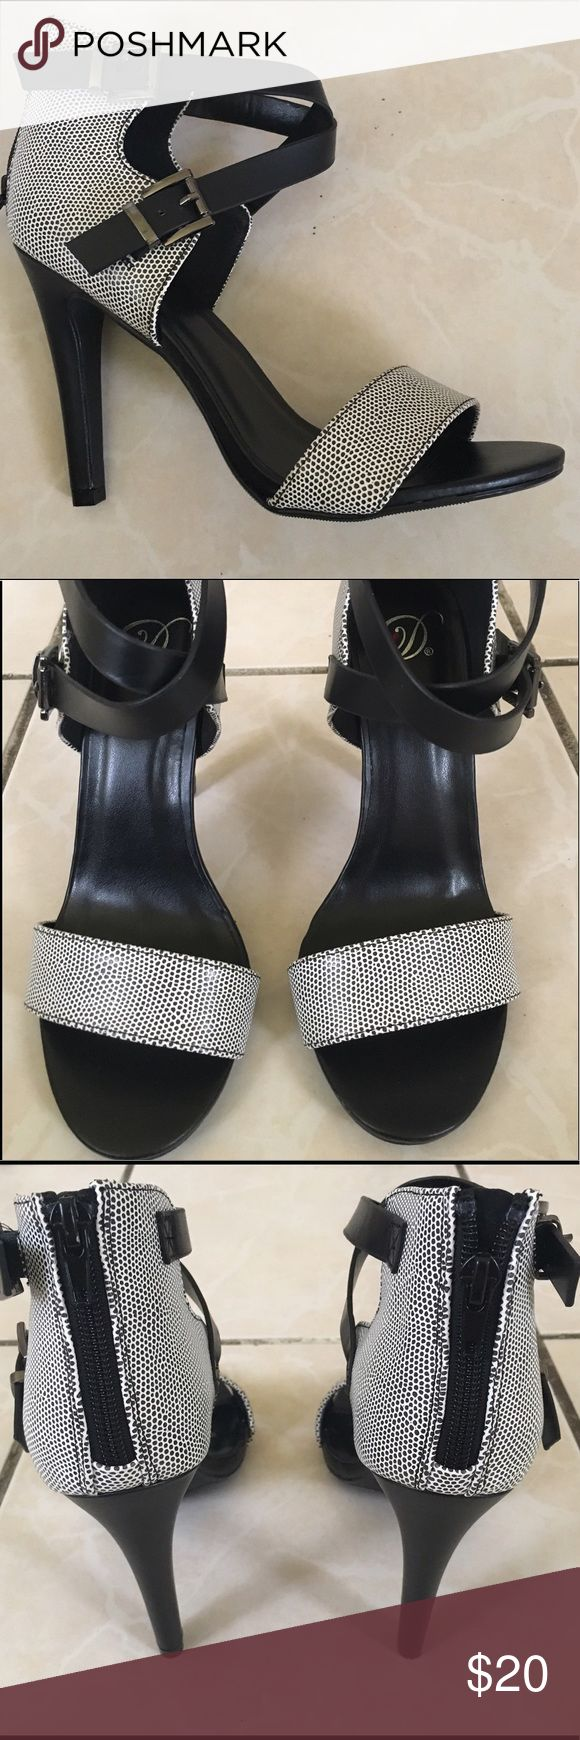 Black and White High Heel Sandals Never Worn Shoes Heels